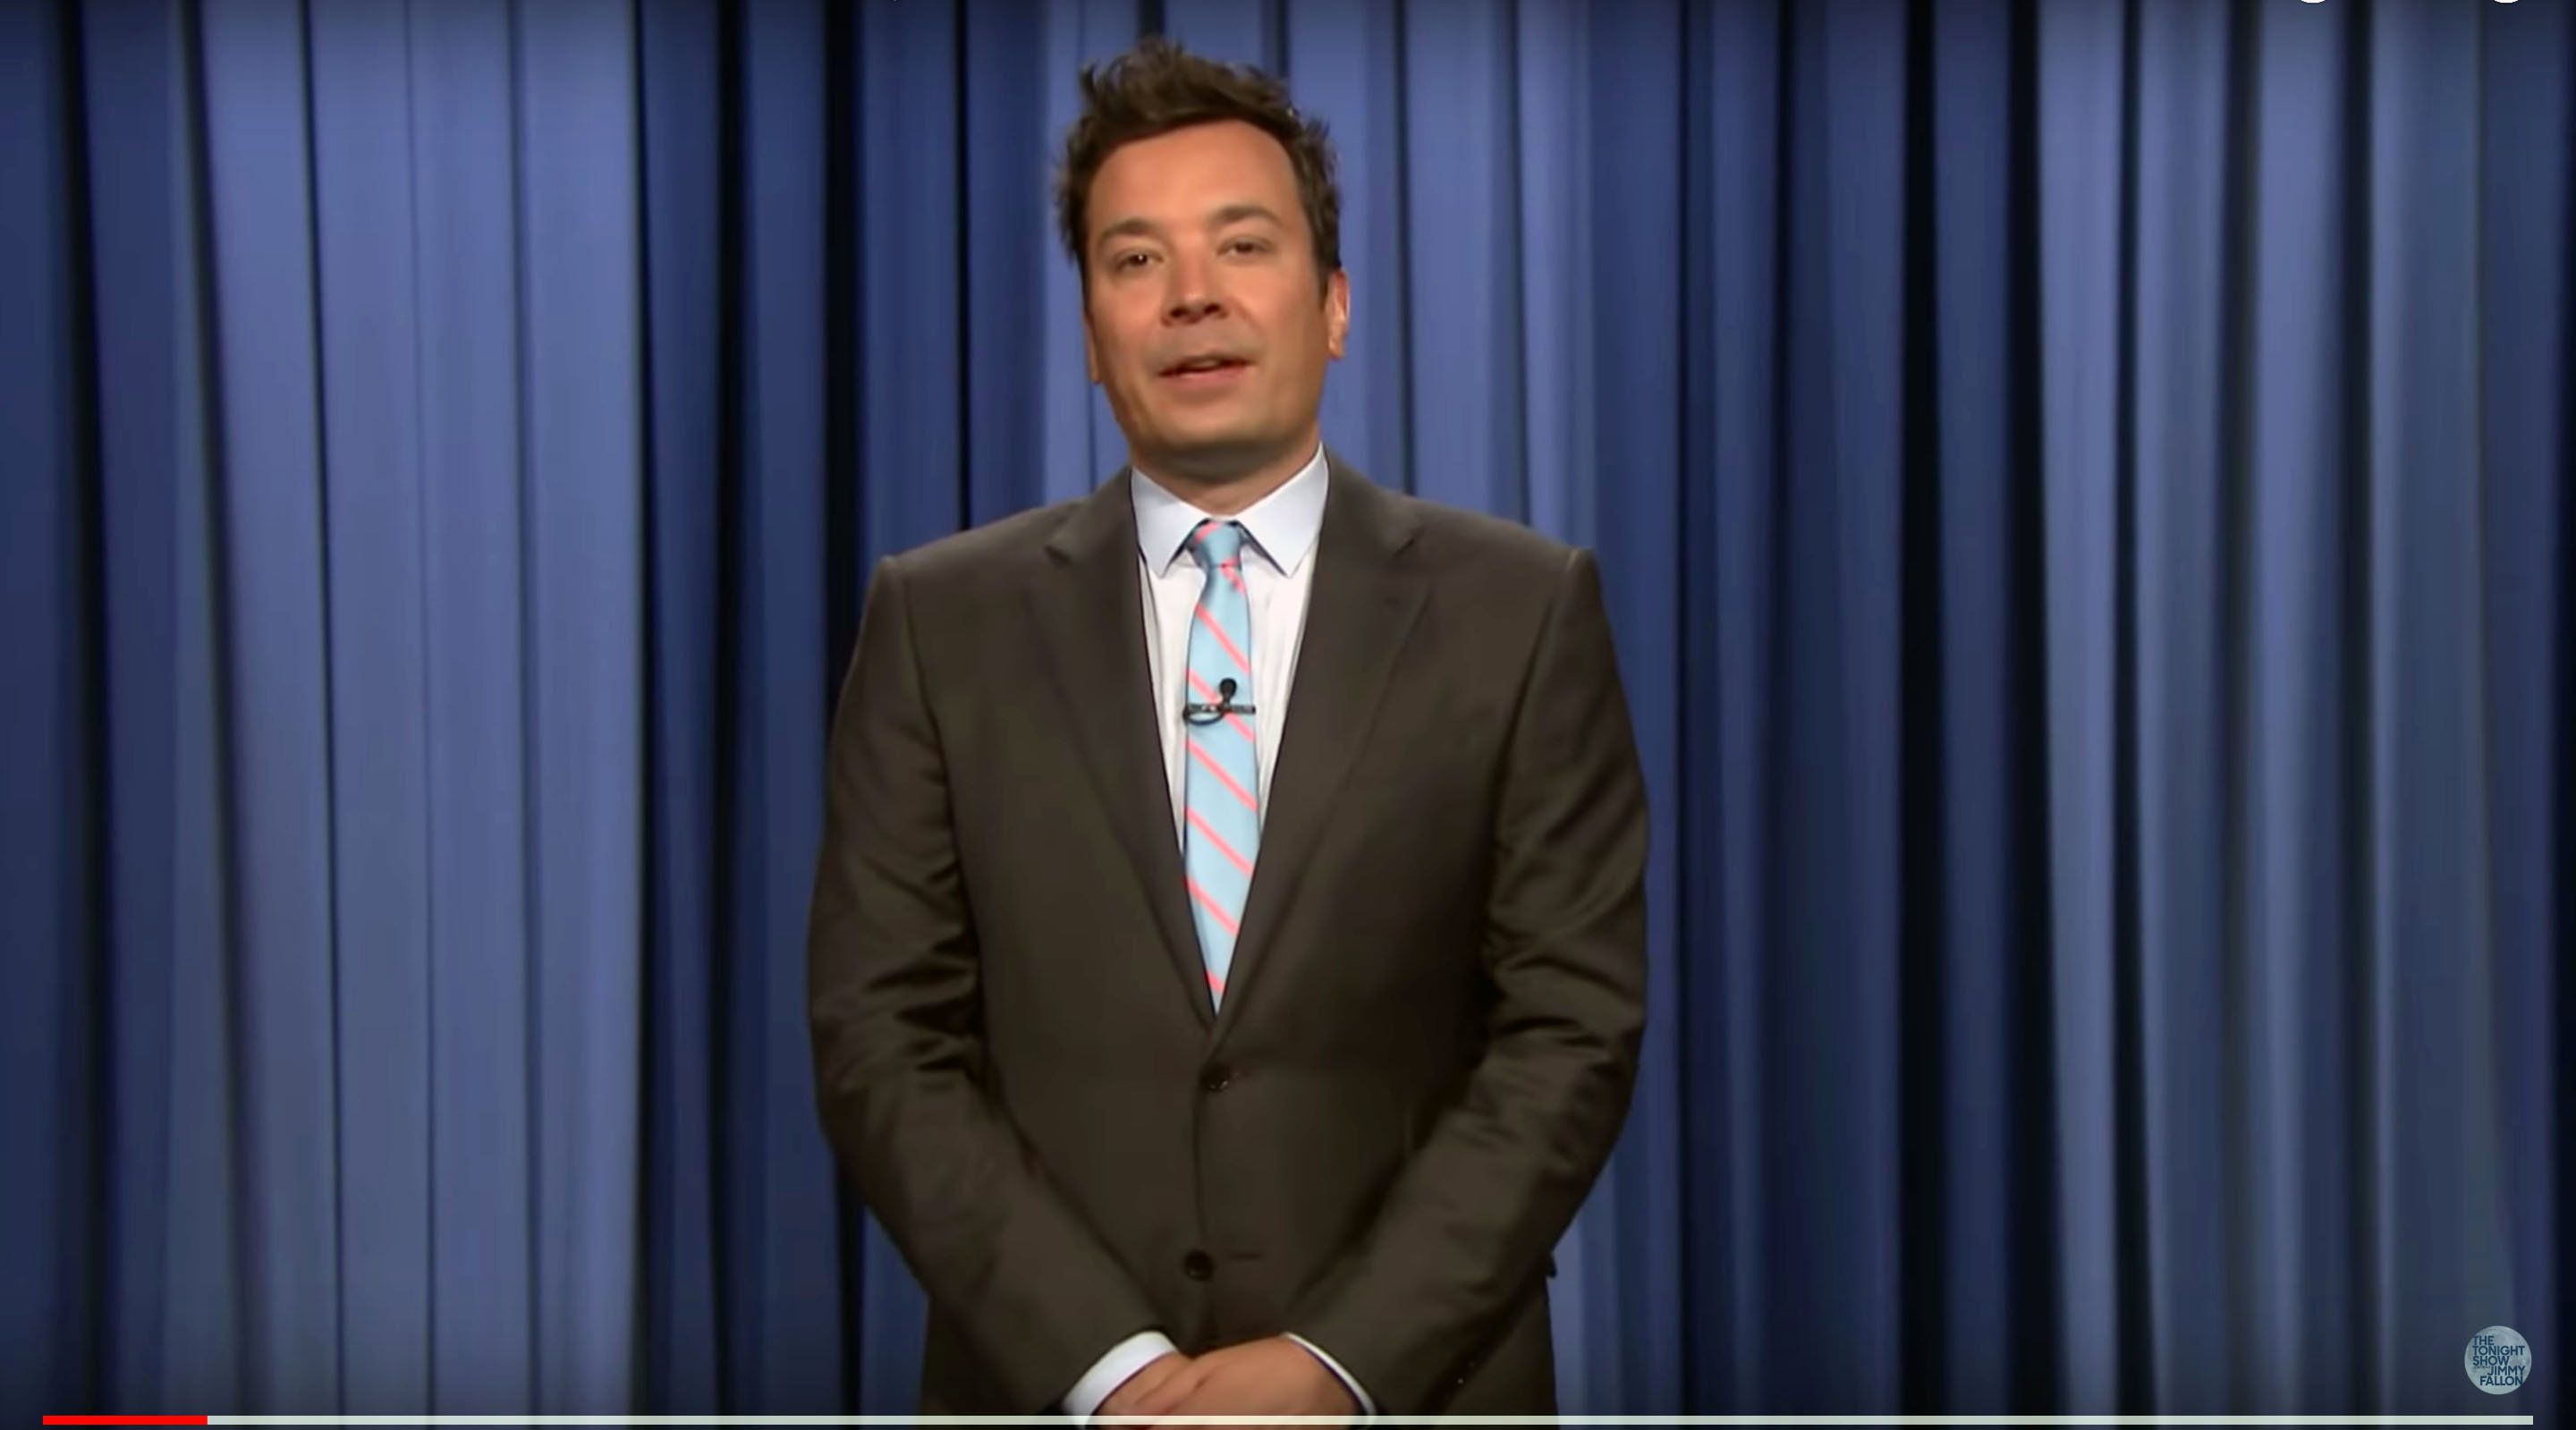 Jimmy Fallon of The Tonight Show comments on the retirement of Justice Anthony Kennedy